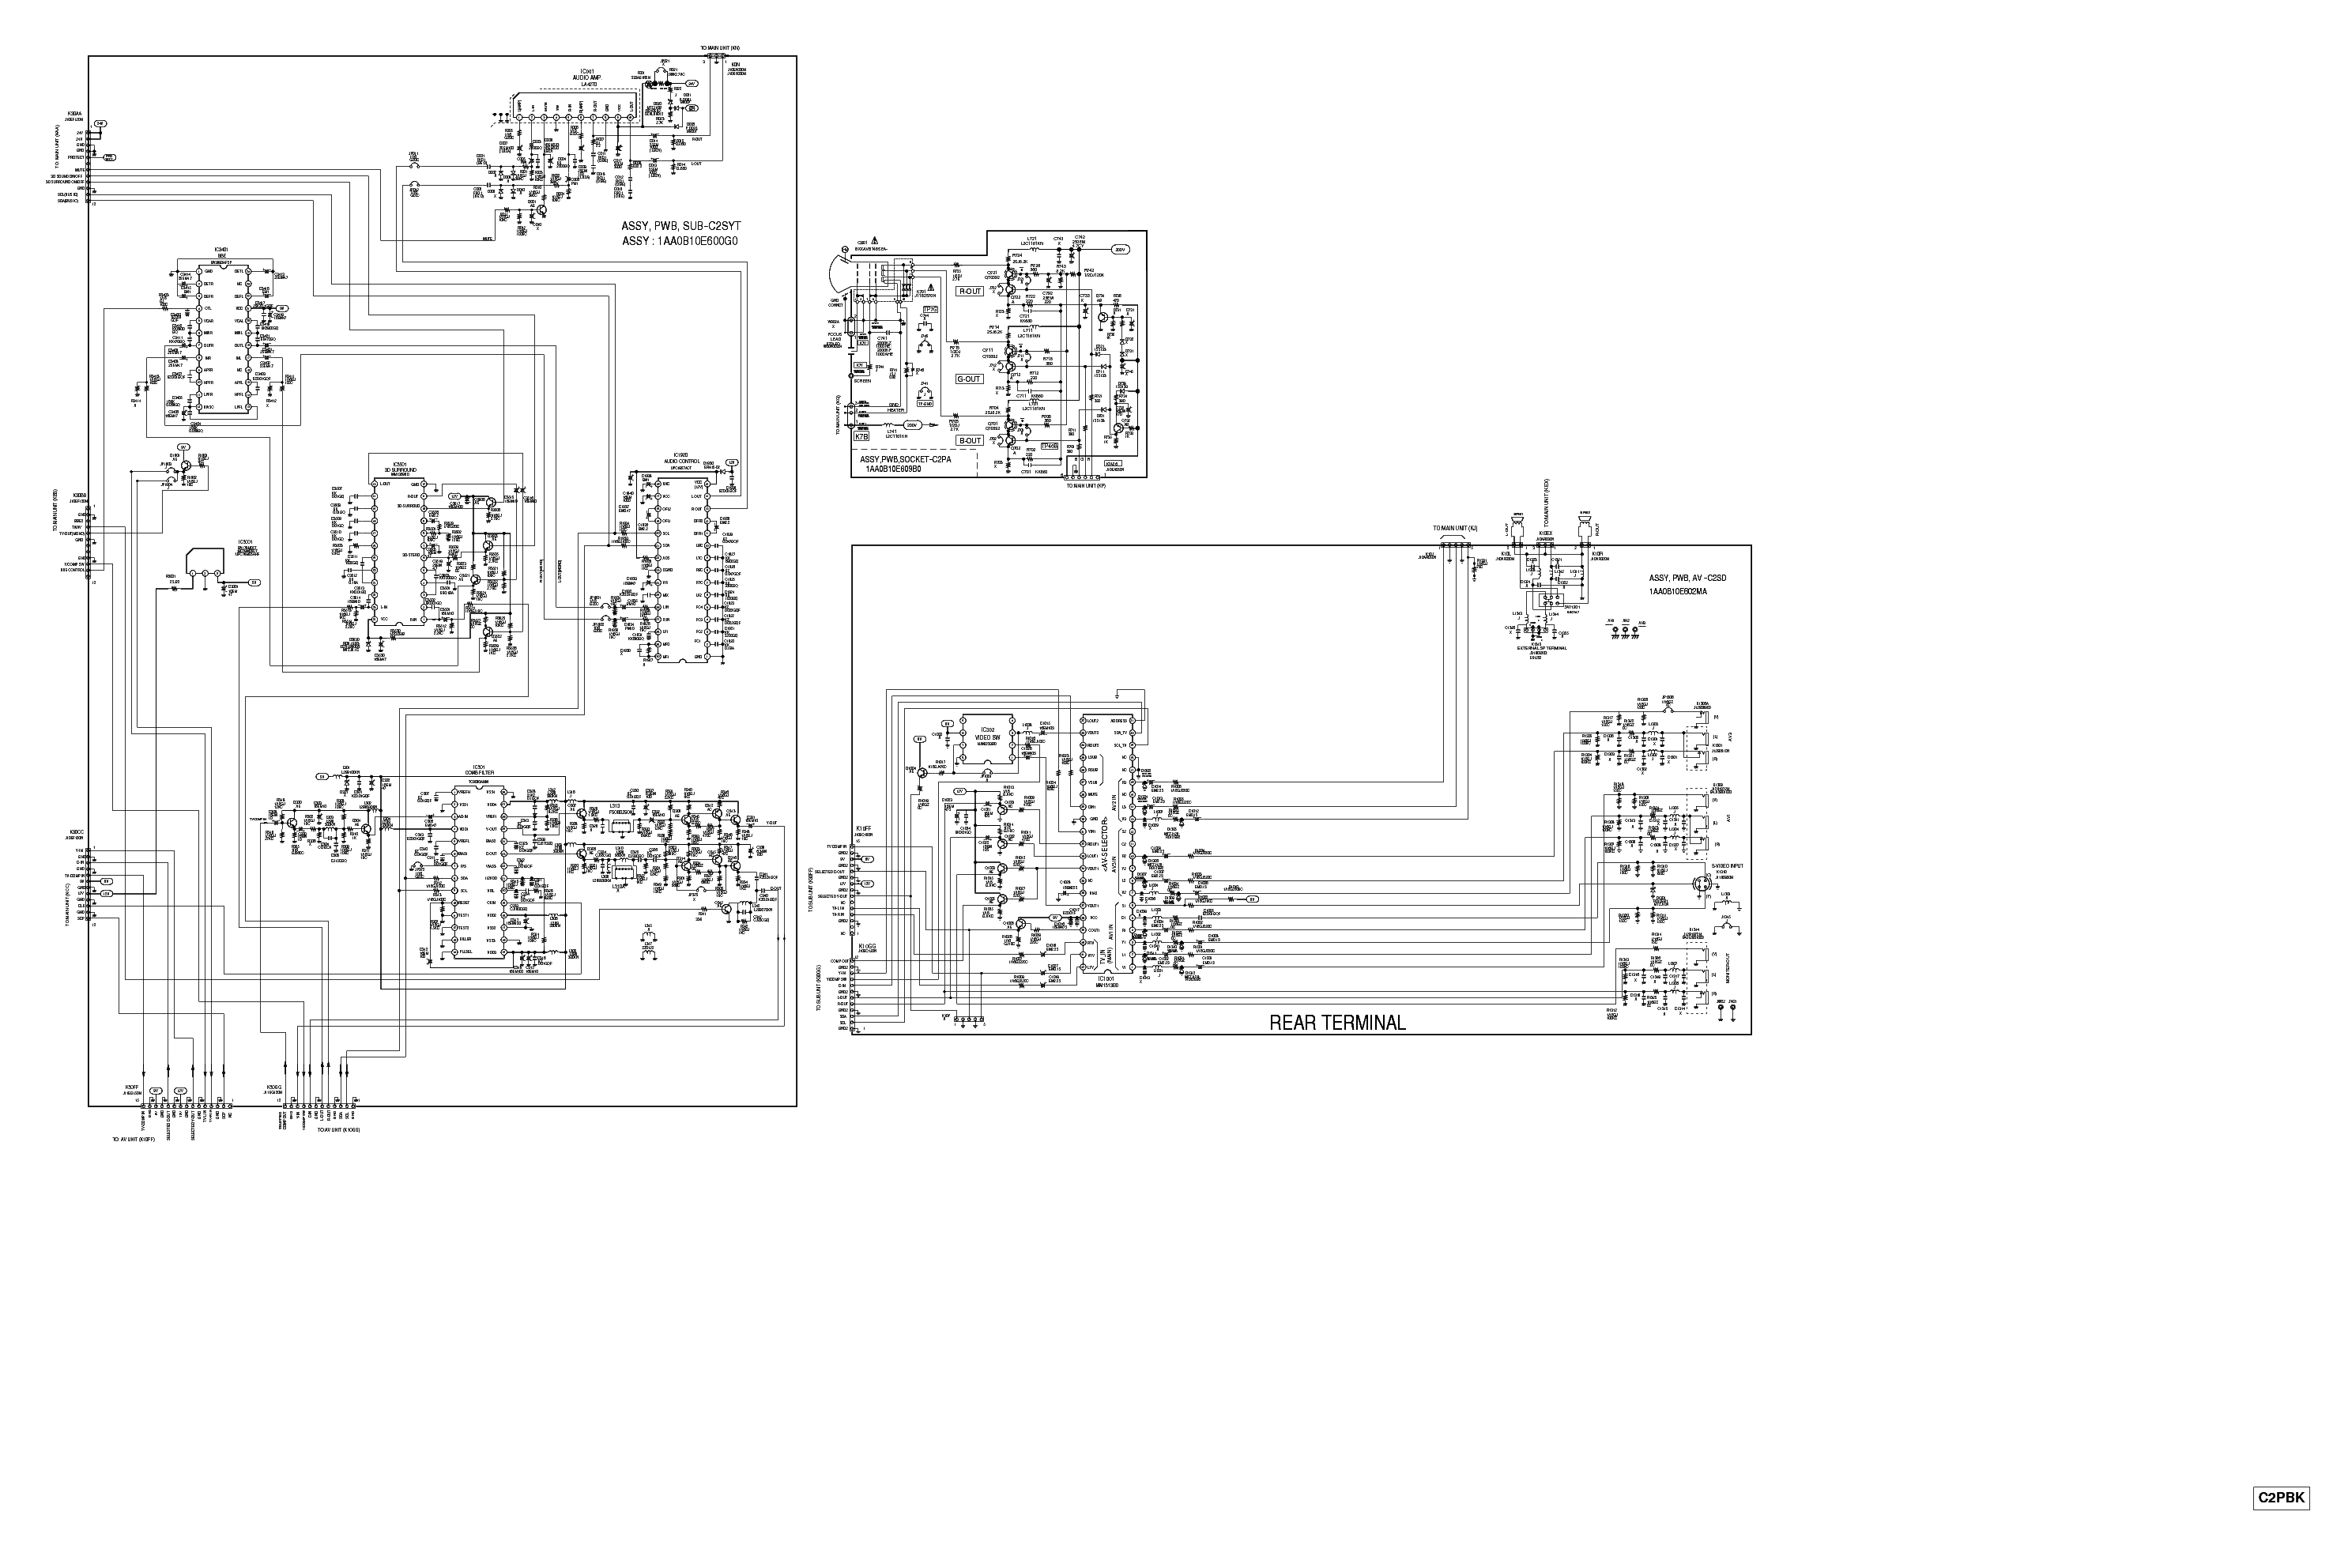 SANYO TV FA1 CHASSIS 1 Service Manual download, schematics